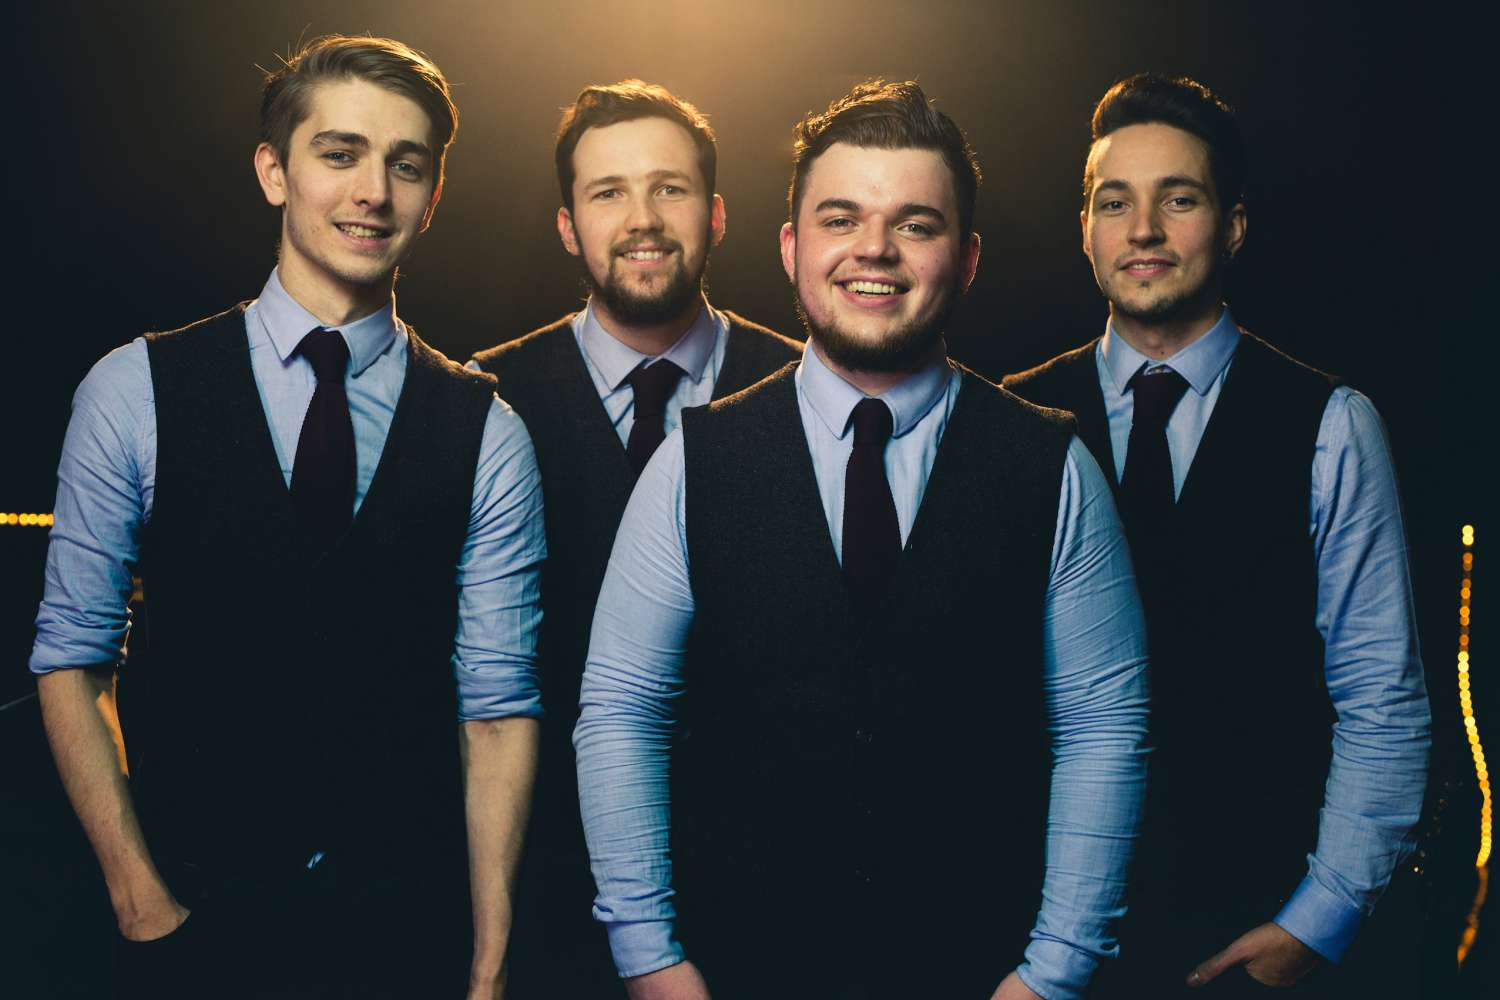 Pretty Fly Guys Manchester Wedding Band For Hire